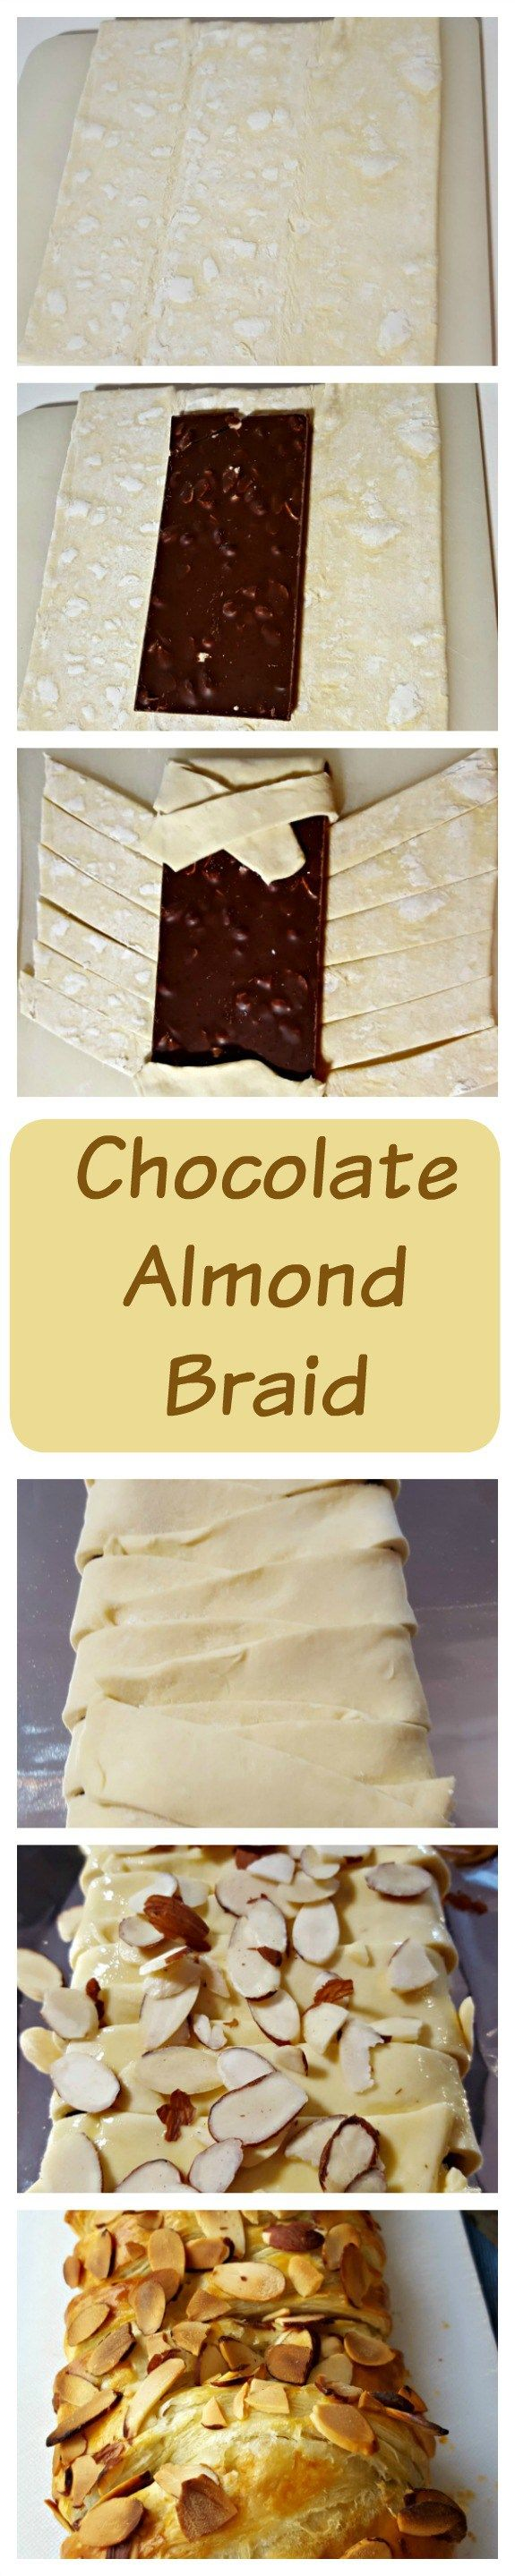 Chocolate Almond Braid If you are looking for a chocolate comfort snack – look no farther. This chocolate almond braid is so easy and so delicious that you will be asked to make it all the time. I have friends call me and ask me to bring them one when they are having a bad day!   Oh and heads up, the box of puff pastry sheets includes two sheets so you might as well buy two candy bars and enough nuts because the first time you make this, you will need the second braid as proof you made it.